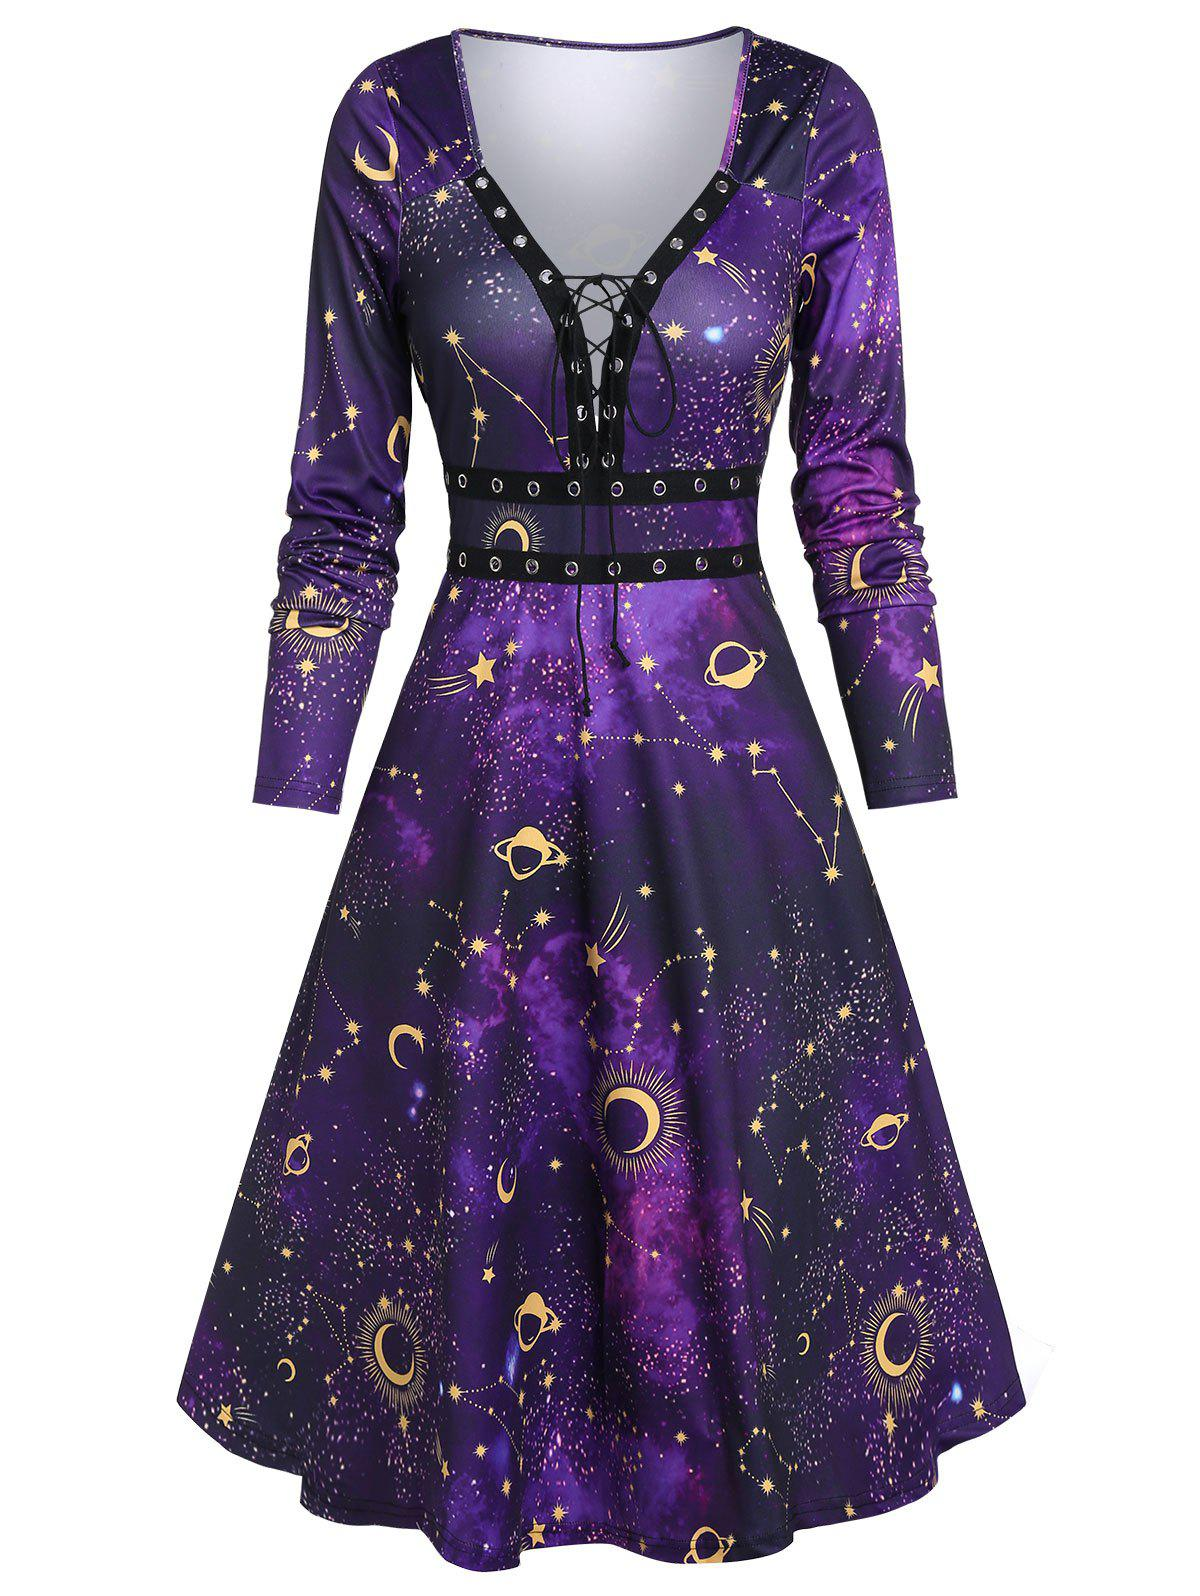 Affordable Starry Print Lace Up Midi A Line Dress